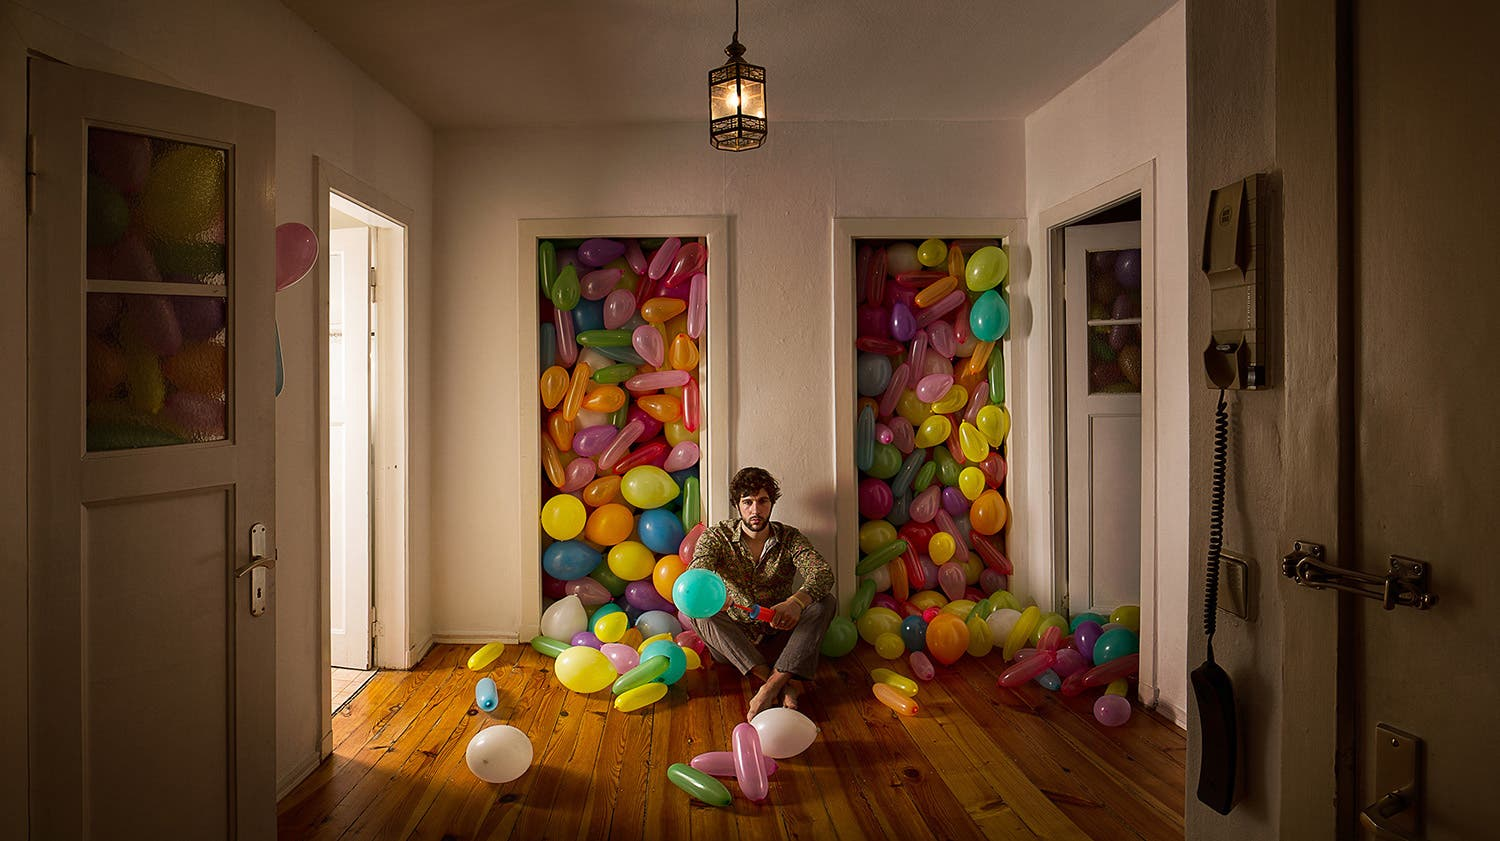 Seb Agnew Explores the Line Between Childhood and Adulthood